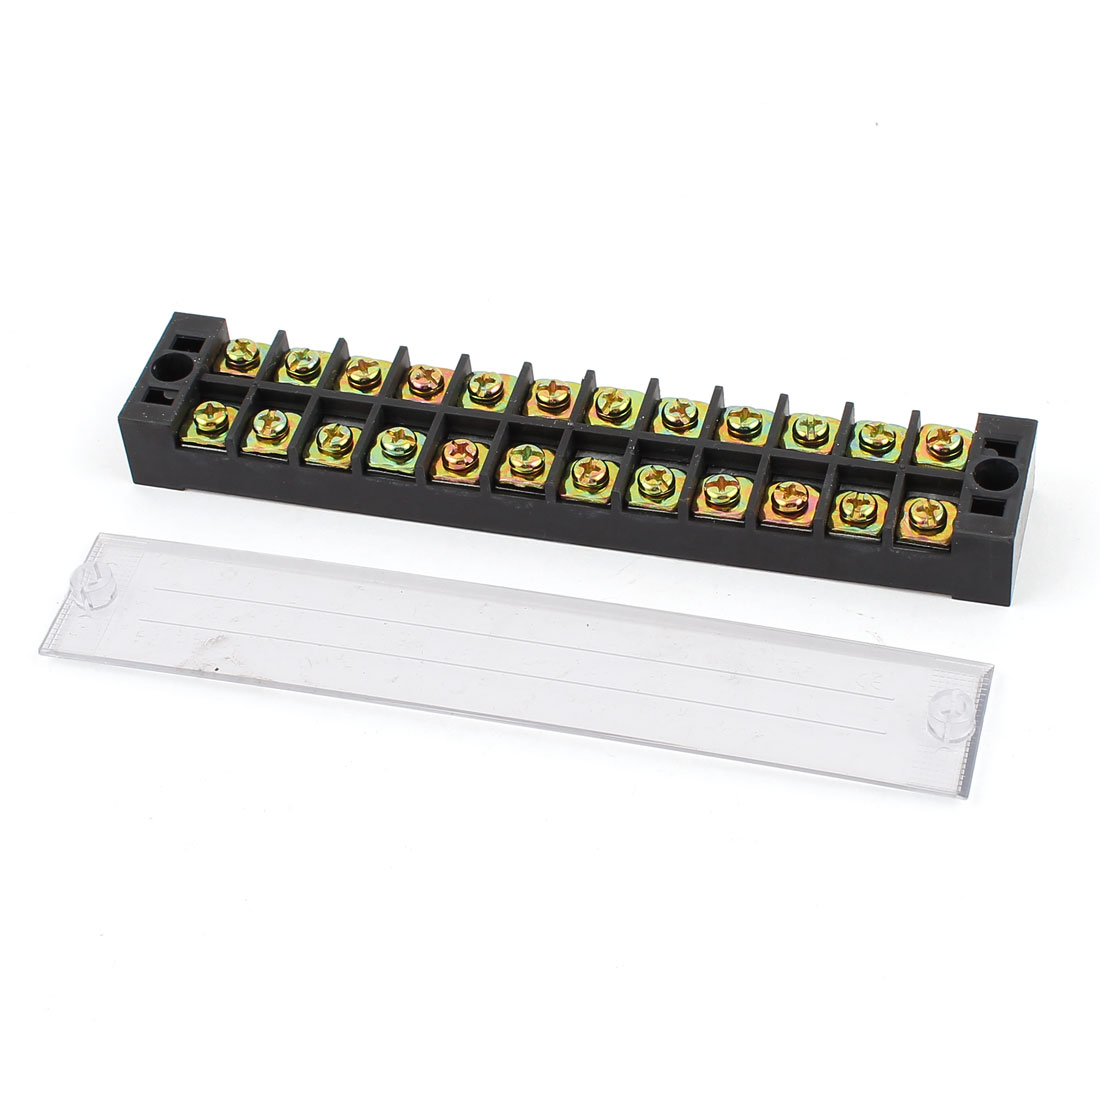 Unique Bargains 600V 25A 2 Rows 12x2 Positions 24P Barrier Terminal Wiring Board Block w Cover